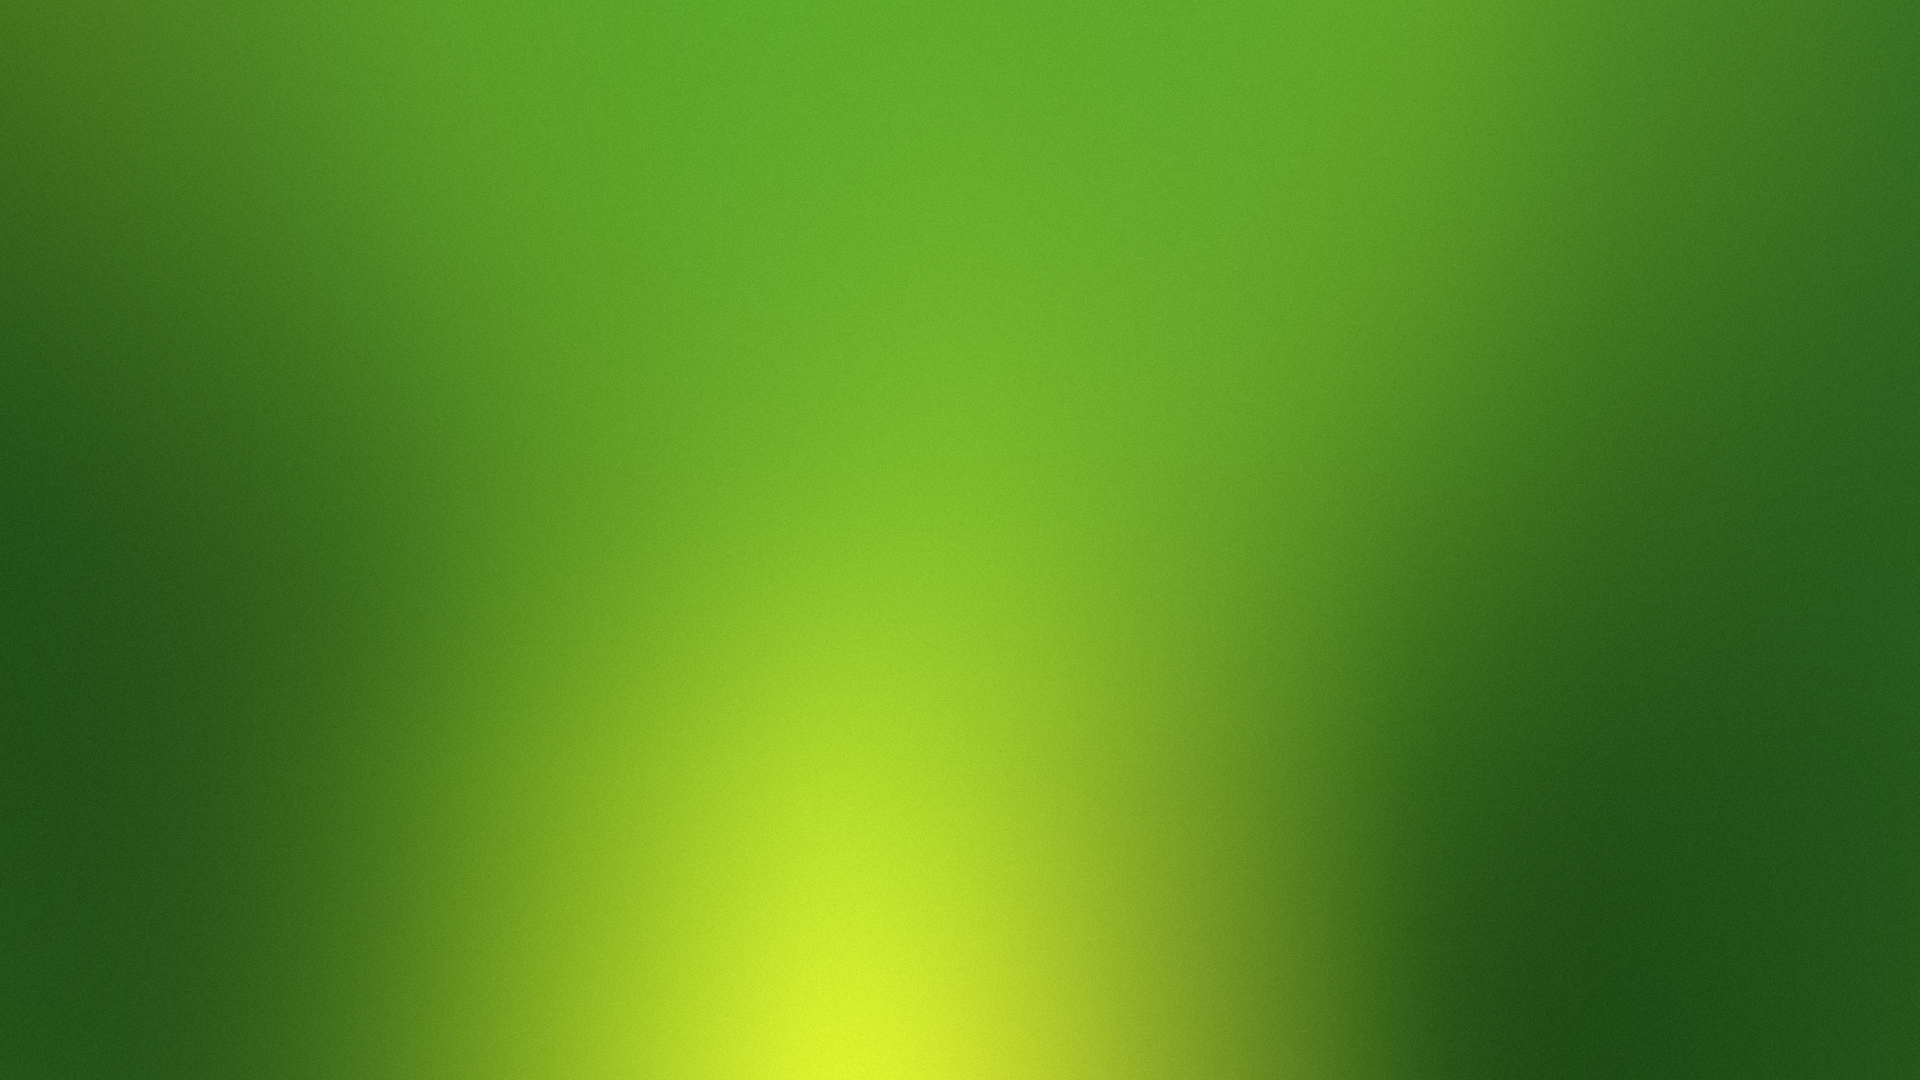 Simple Green 236.23 Kb